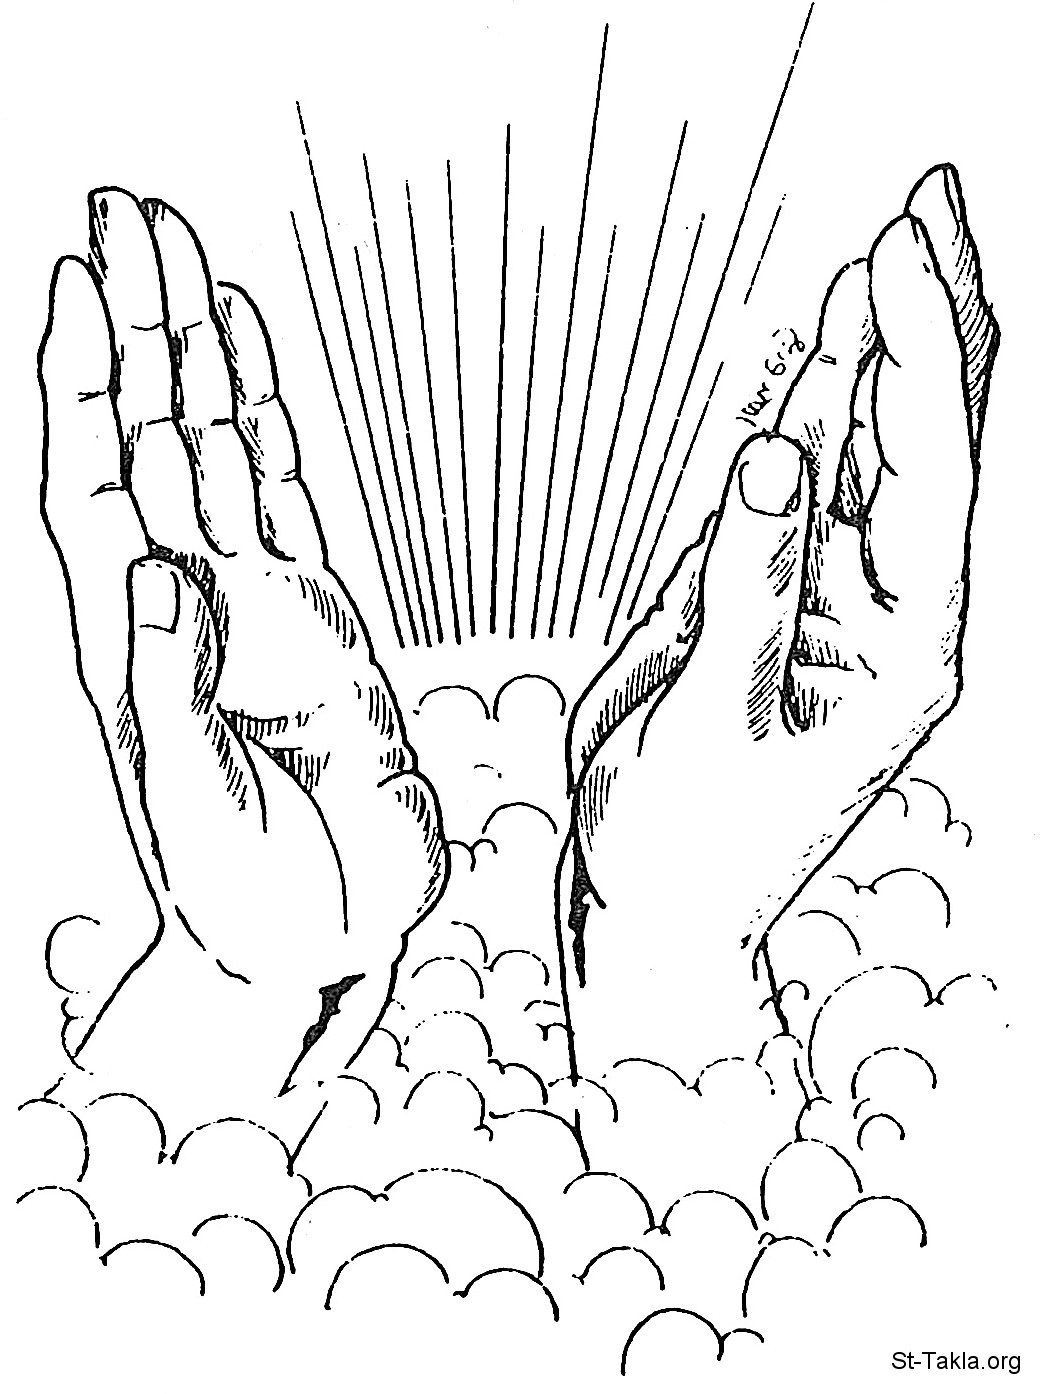 Coloring Open Hands With Chains Coloring Pages